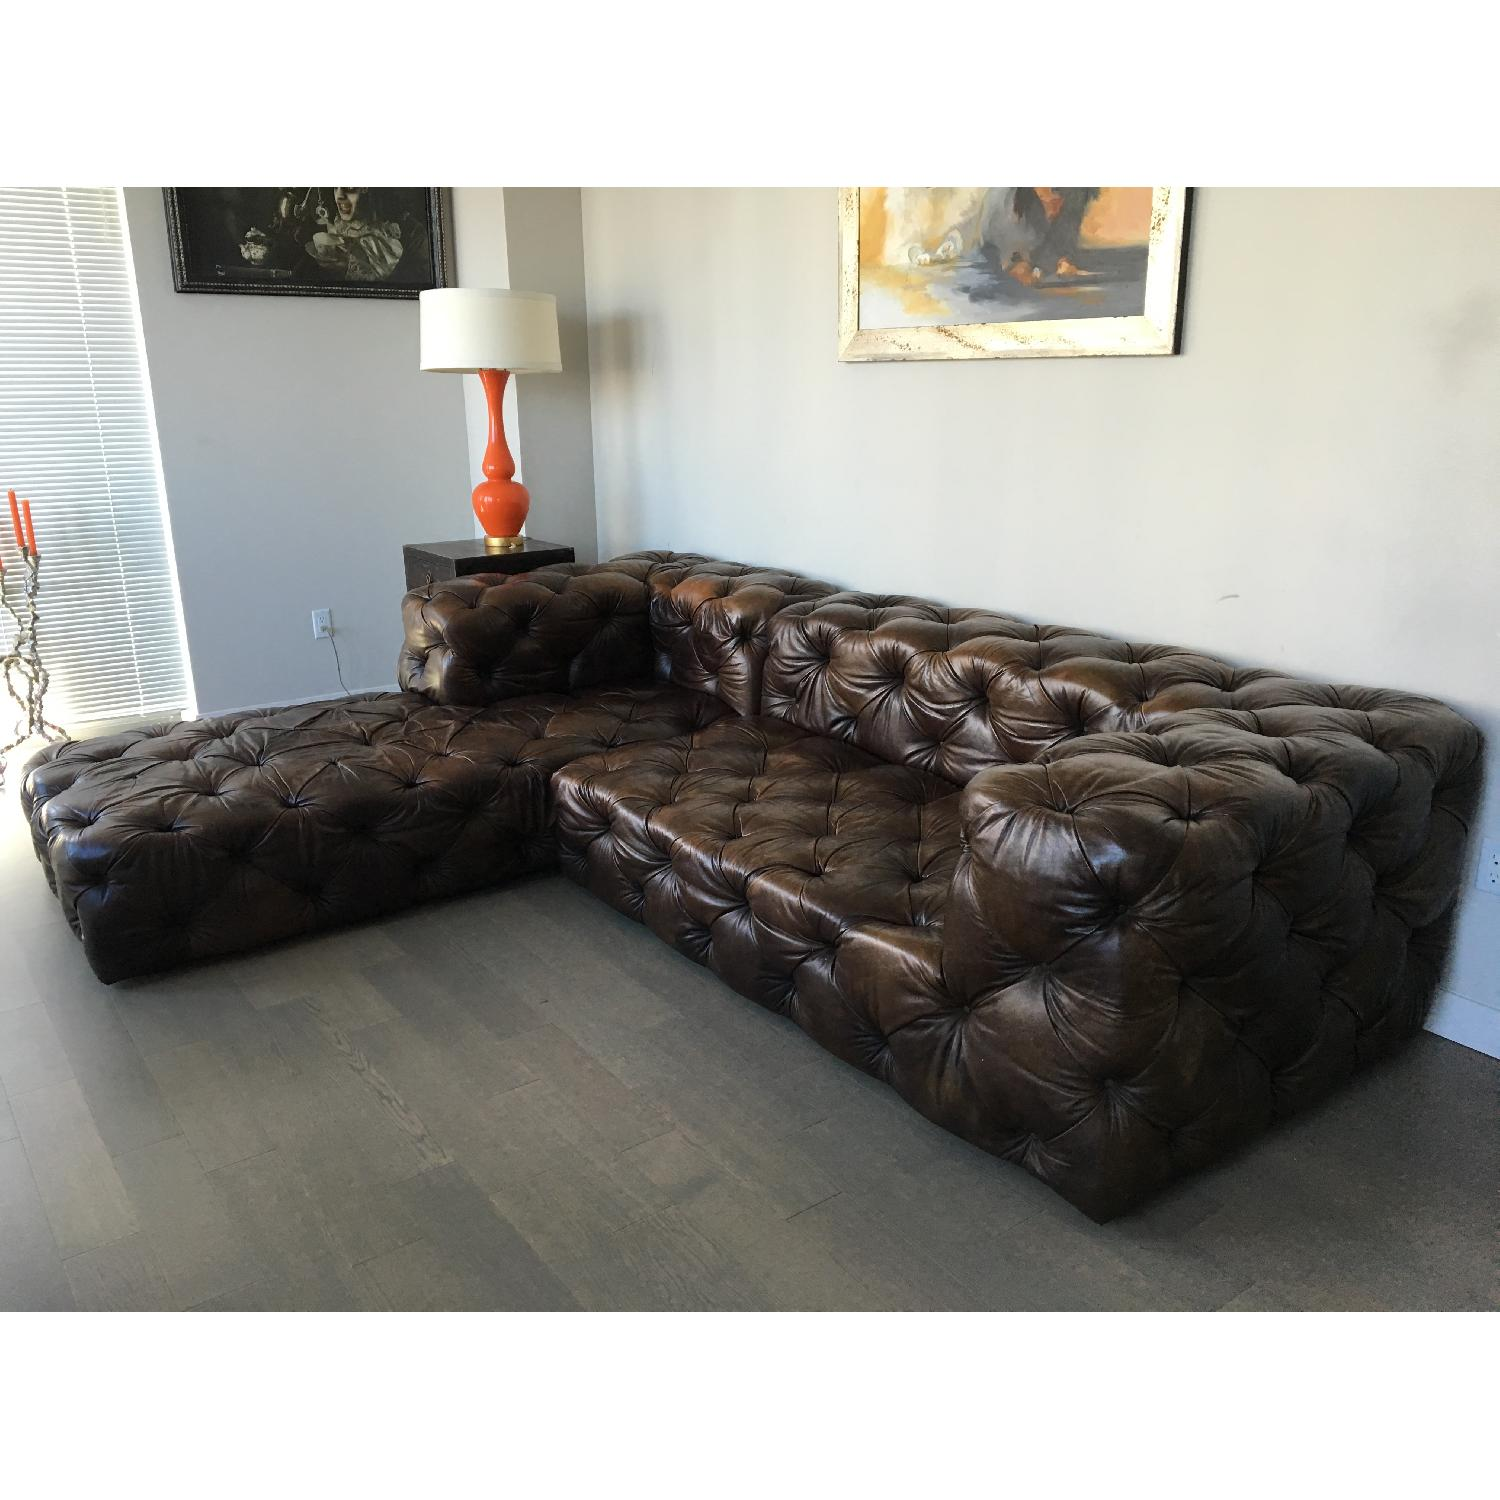 Restoration Hardware Brown Leather Sectional Couch - image-1